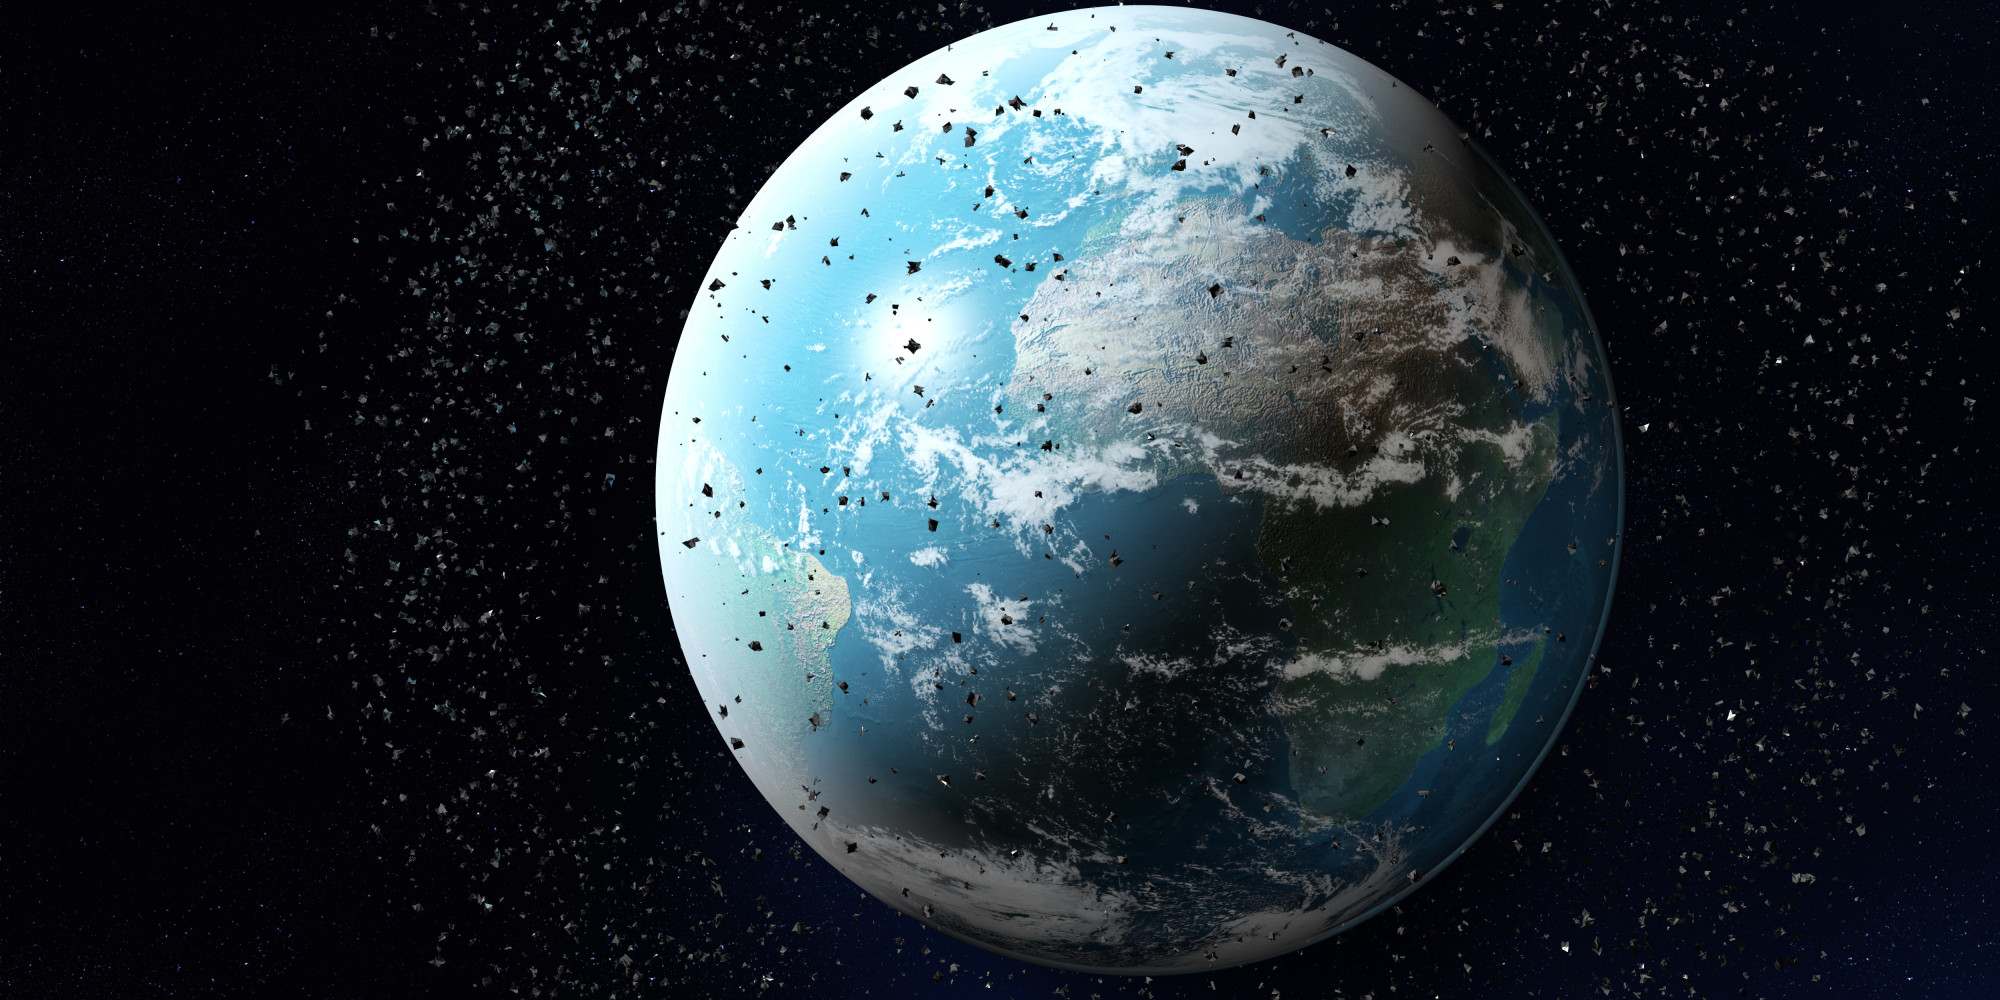 Space junk around planet earth